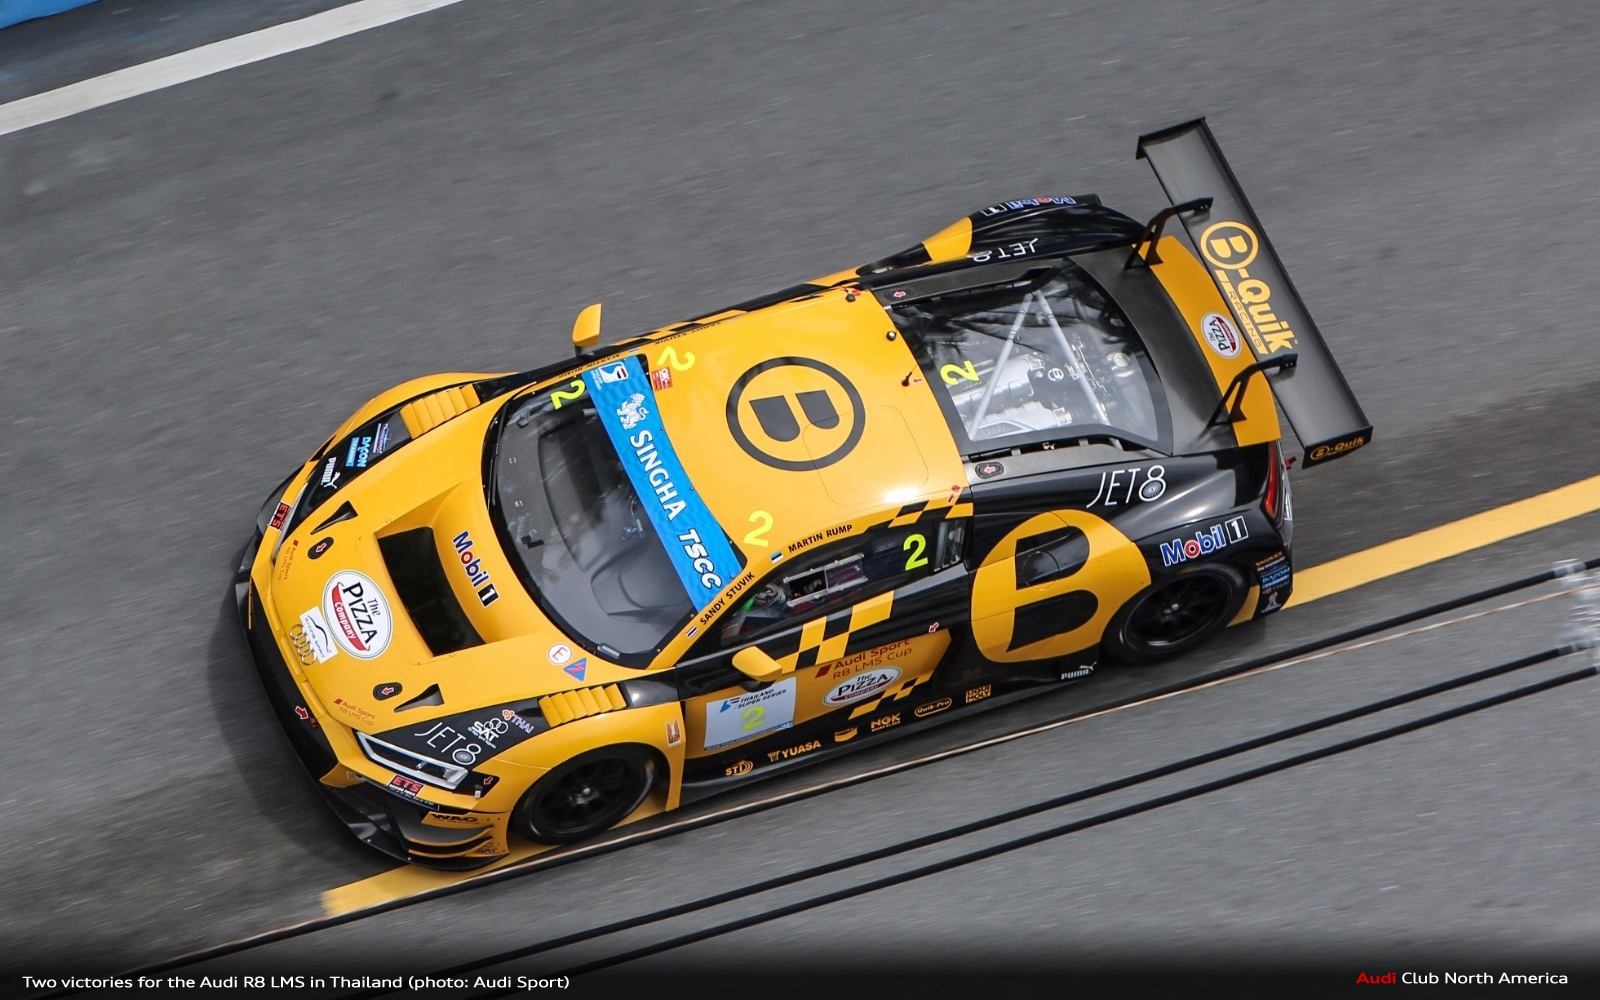 Two Victories for the Audi R8 LMS in Thailand